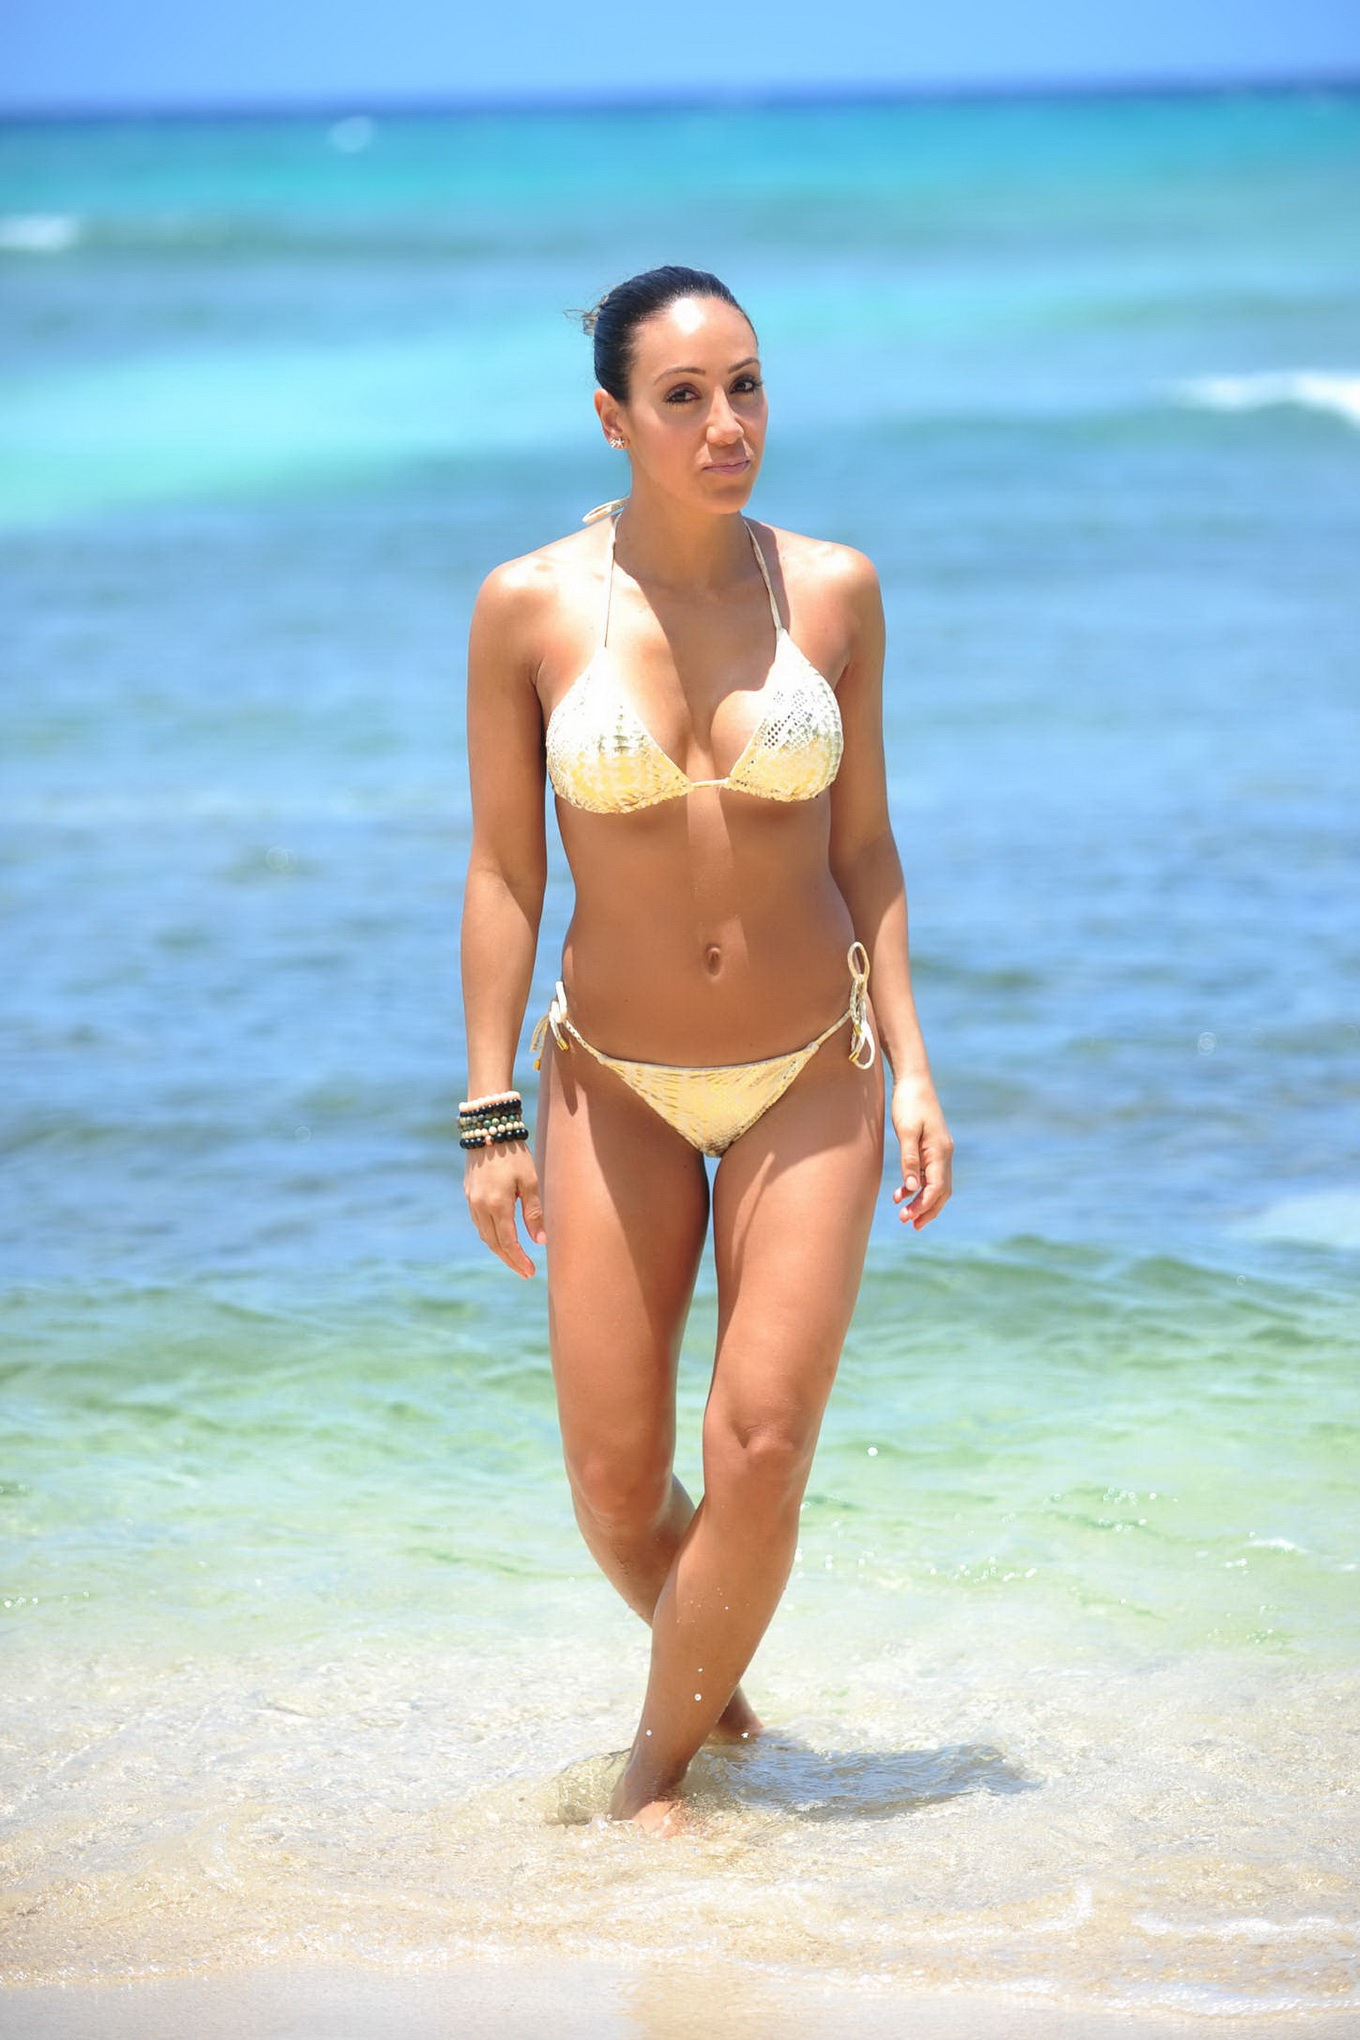 gorga wearing skimpy golden string bikini at the vacation in jamaica